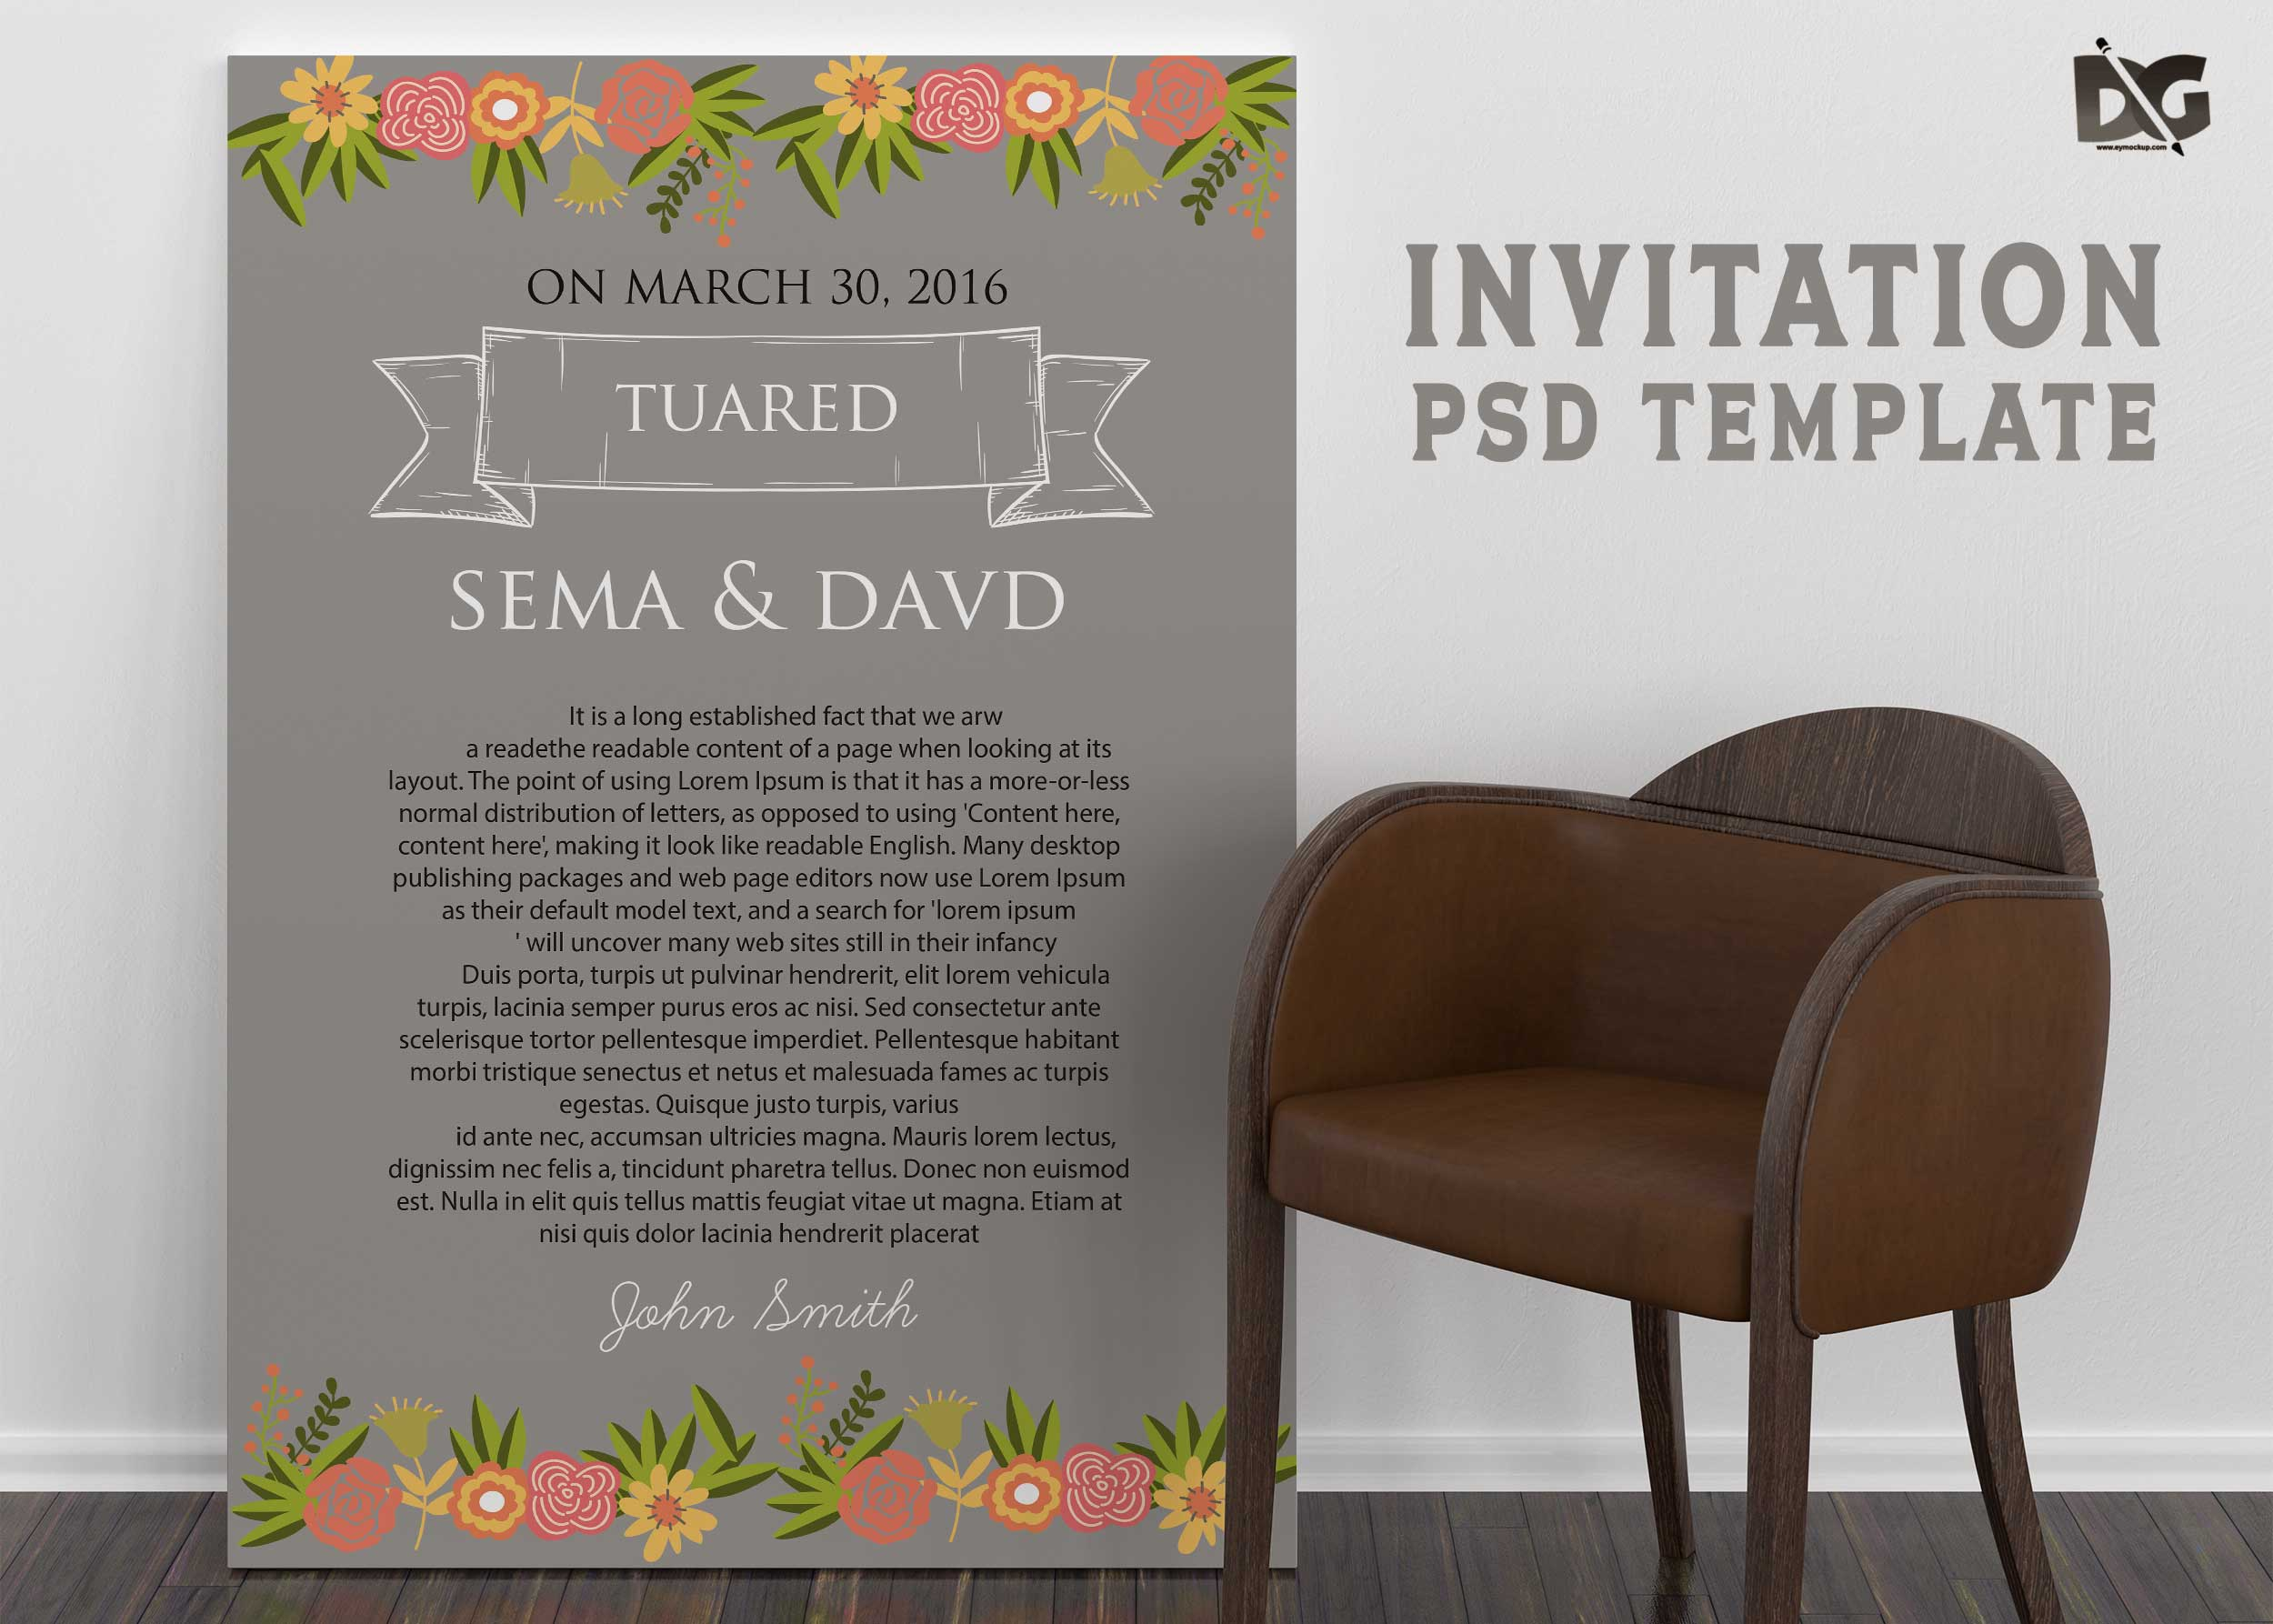 Free Download Wedding Invitation PSD Template